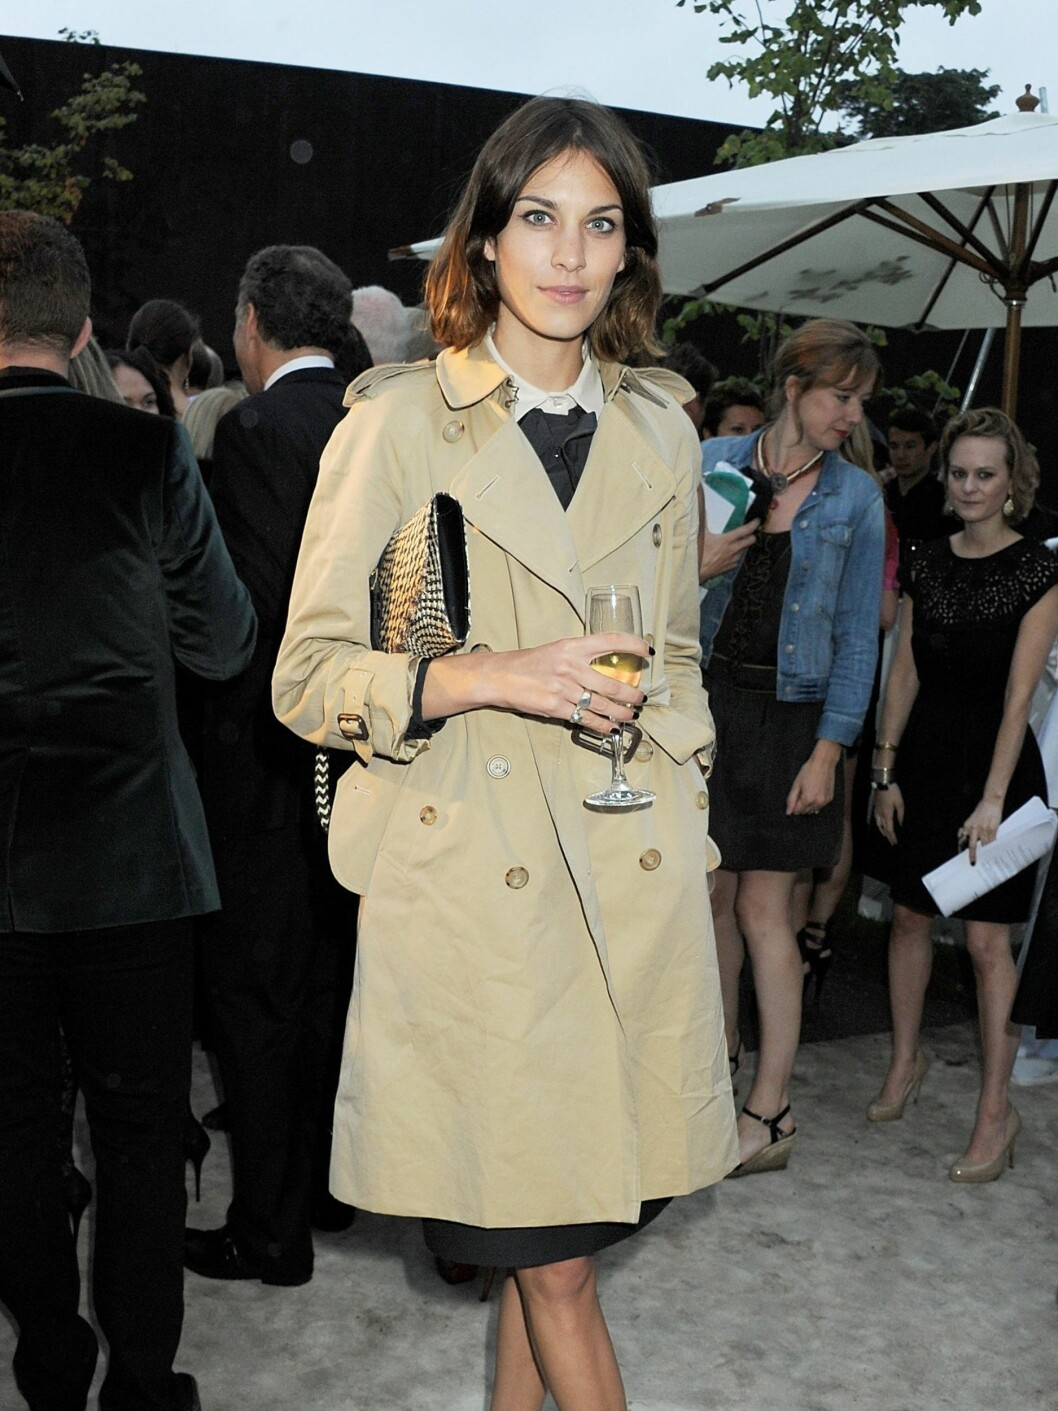 LONDON, ENGLAND - JUNE 28:  (EMBARGOED FOR PUBLICATION IN UK TABLOID NEWSPAPERS UNTIL 48 HOURS AFTER CREATE DATE AND TIME. MANDATORY CREDIT PHOTO BY DAVE M. BENETT/GETTY IMAGES REQUIRED)  Alexa Chung attends the Burberry Serpentine Summer Party at The Serpentine Gallery on June 28, 2011 in London, England.  (Photo by Dave M. Benett/Getty Images) By: All Over Press / Getty Images CODE: GE01X8 Foto: All Over Press